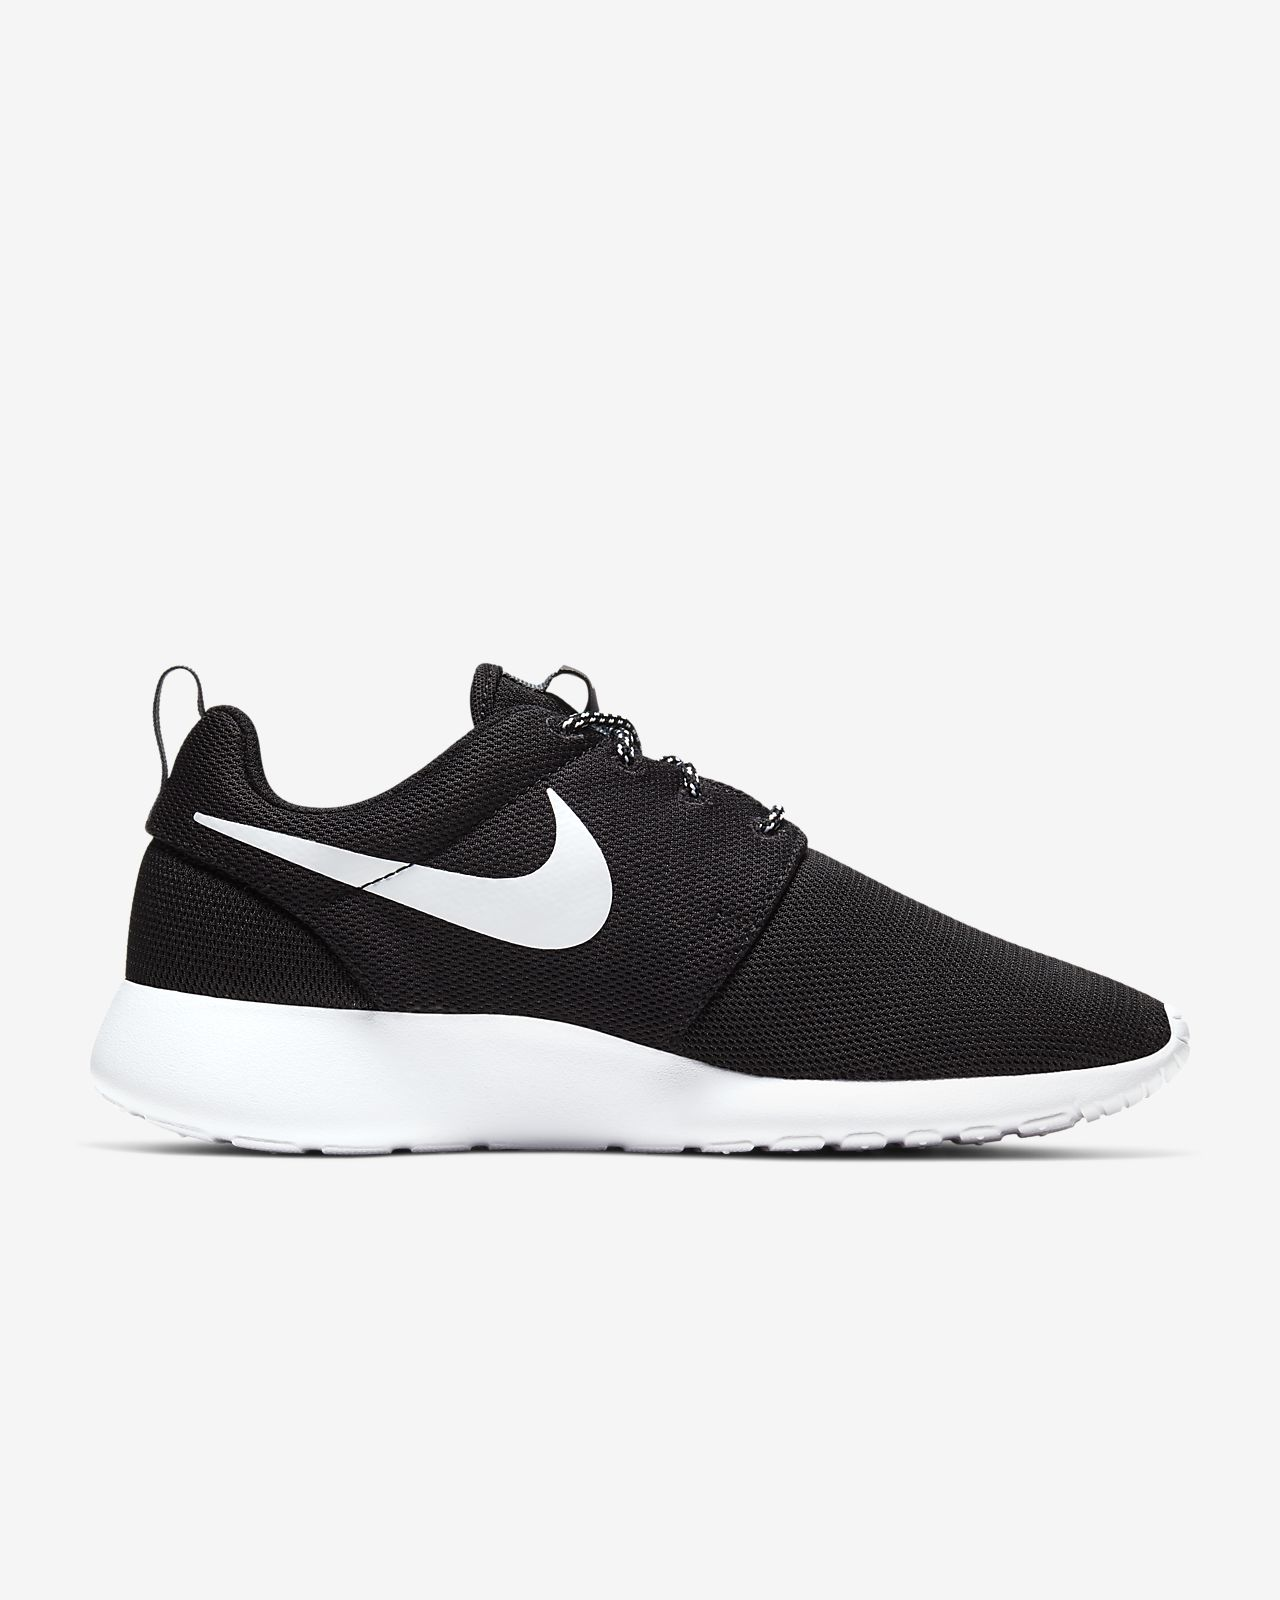 premium selection f74e8 87819 ... Nike Roshe One Women s Shoe